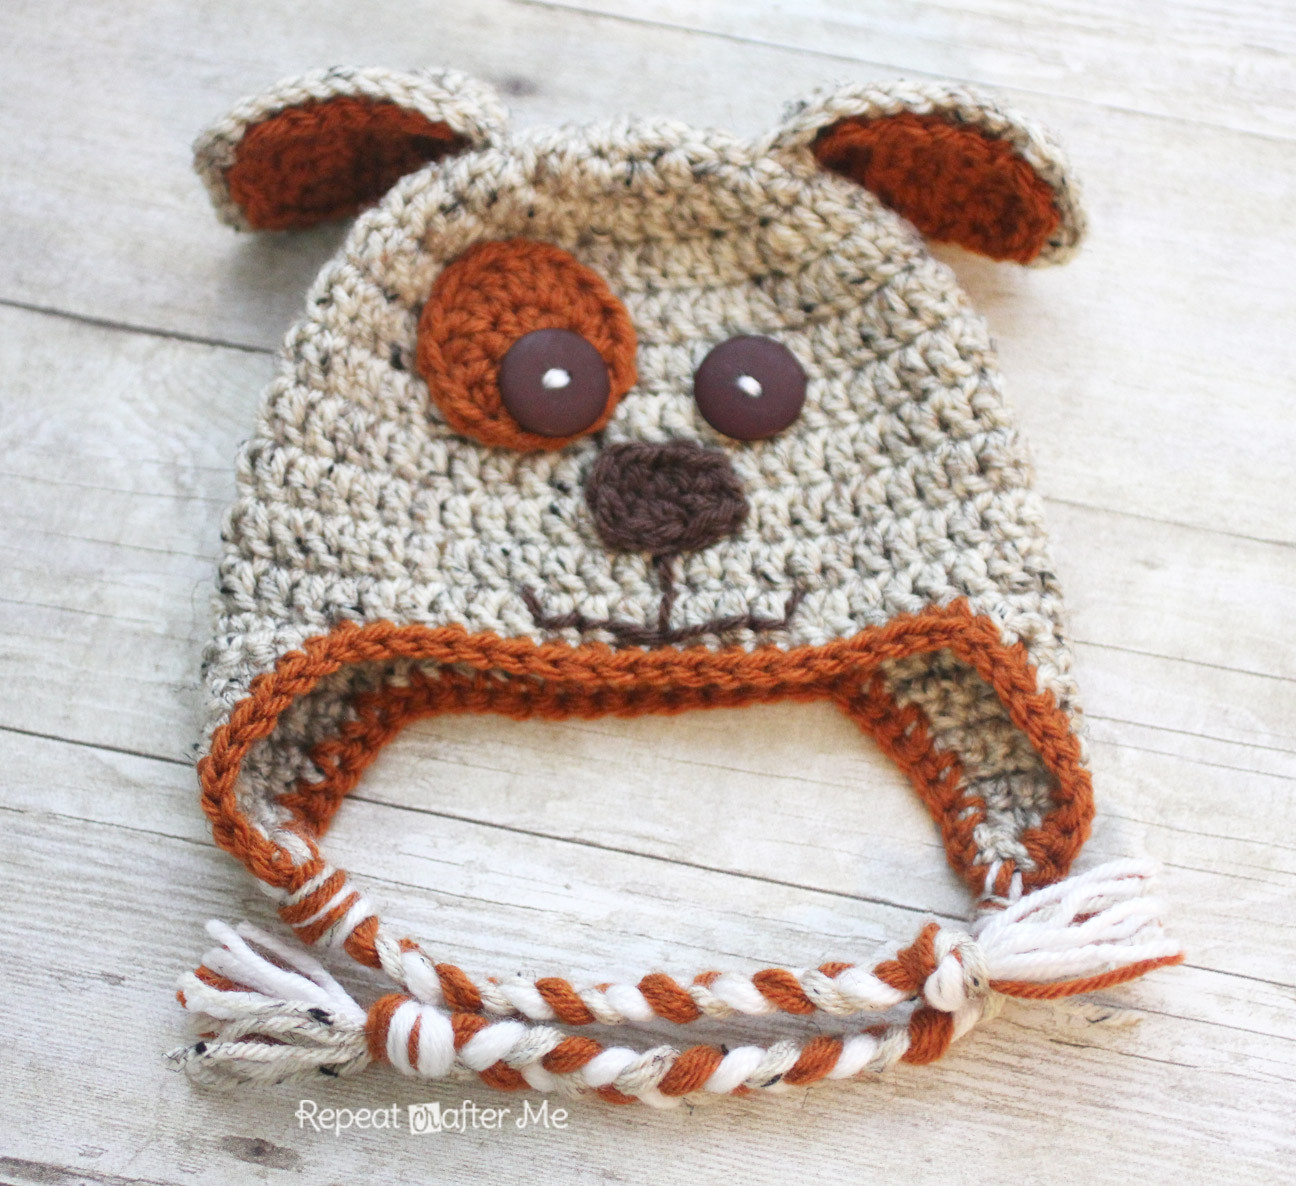 Crochet Pinterest Best Of Crochet Puppy Hat Pattern Repeat Crafter Me Of Brilliant 45 Pictures Crochet Pinterest